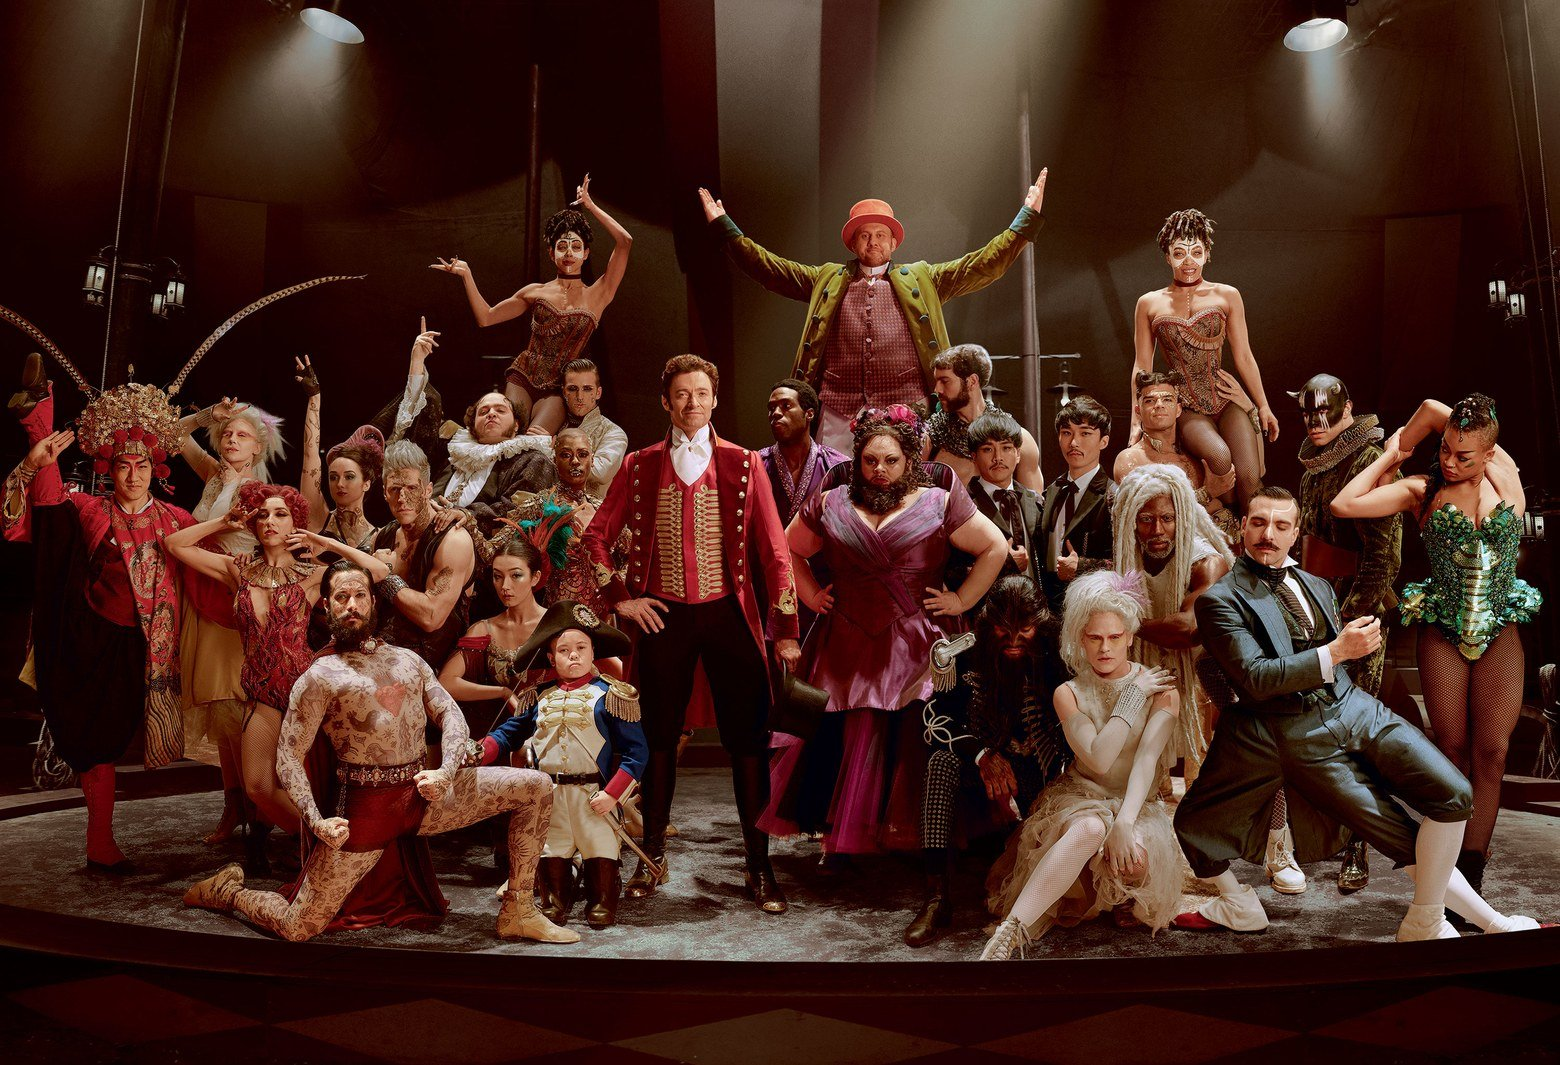 Lettie Lutz Real The Greatest Showman Serves As Vital Valuable Lesson Of